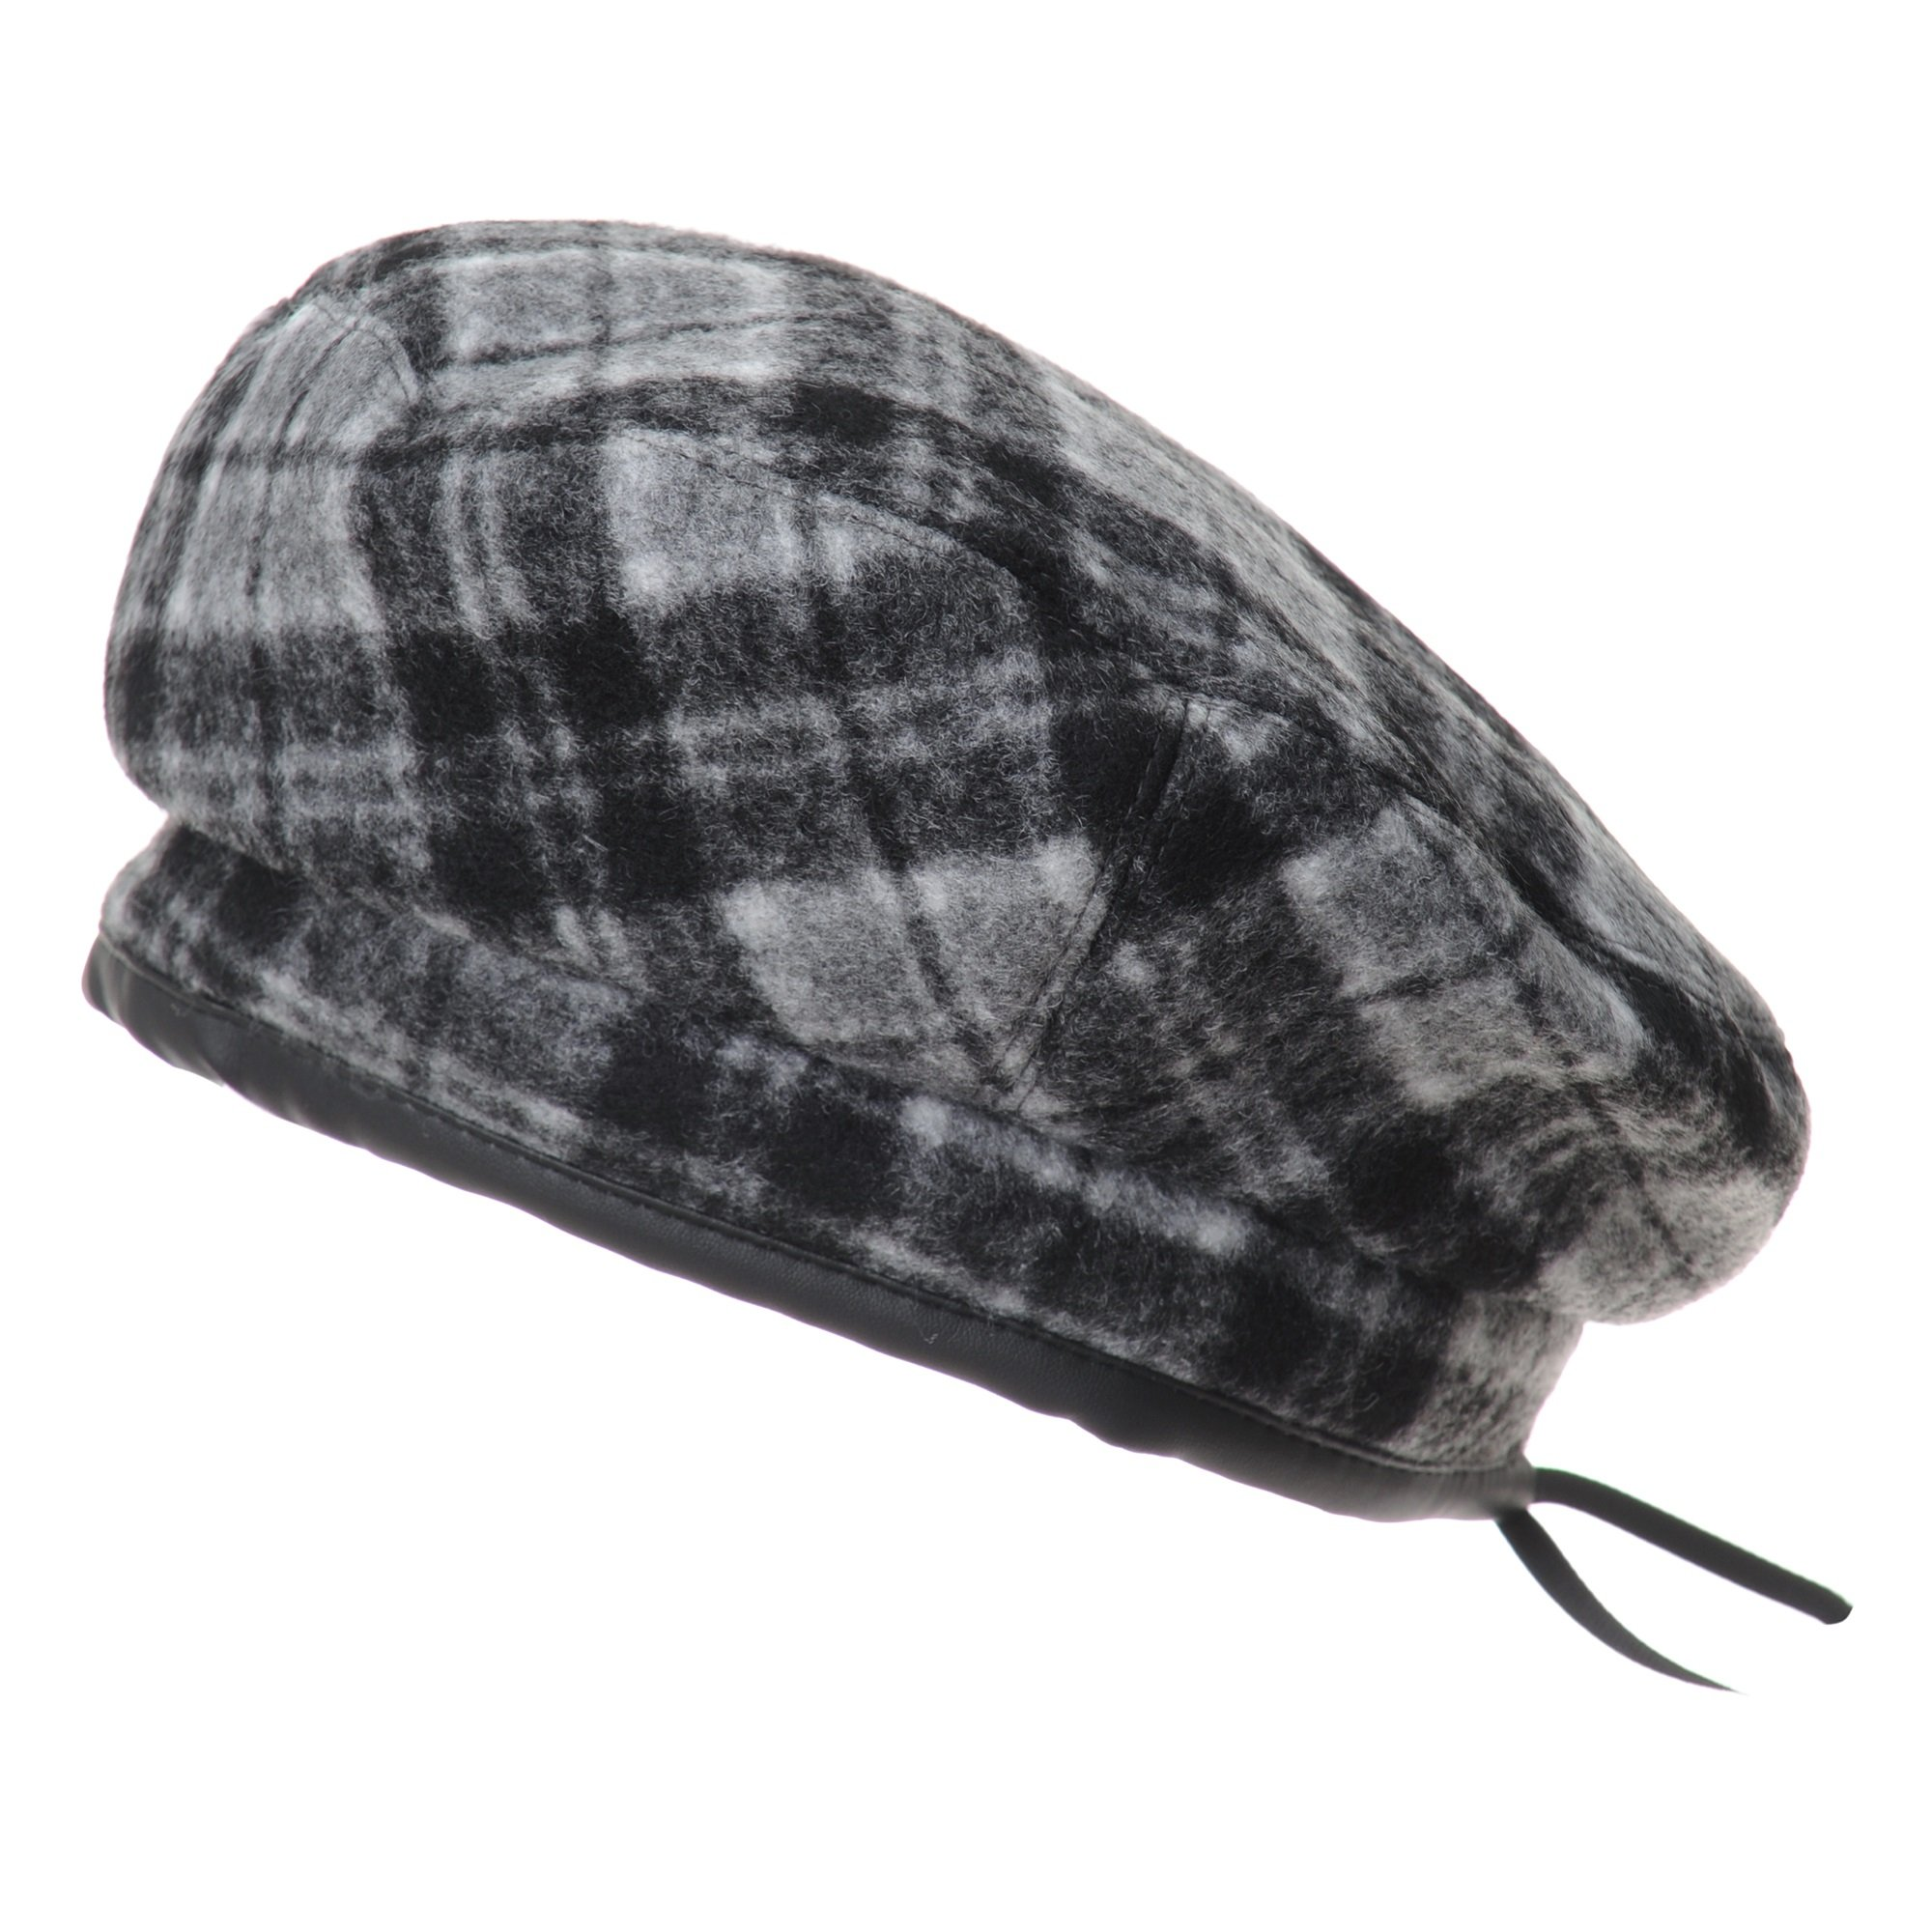 WITHMOONS Wool Beret Hat Tartan Check Leather Sweatband KR3781 (Grey)